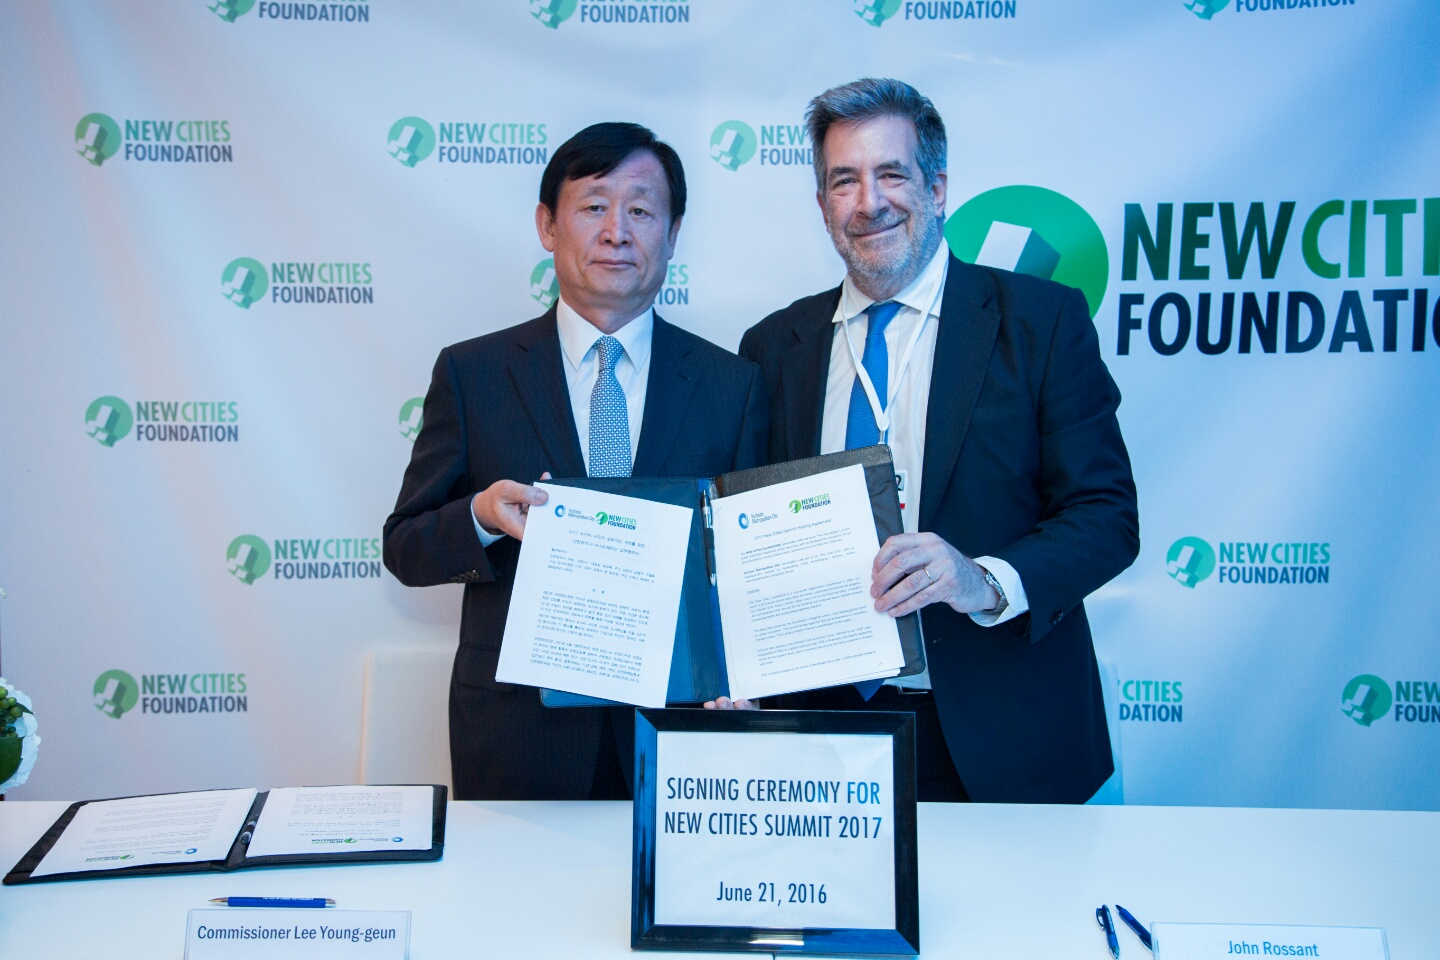 IFE Commissioner Lee Young-geun posed for a picture after Songdo was selected as the host city of New Cities Summit 2017.